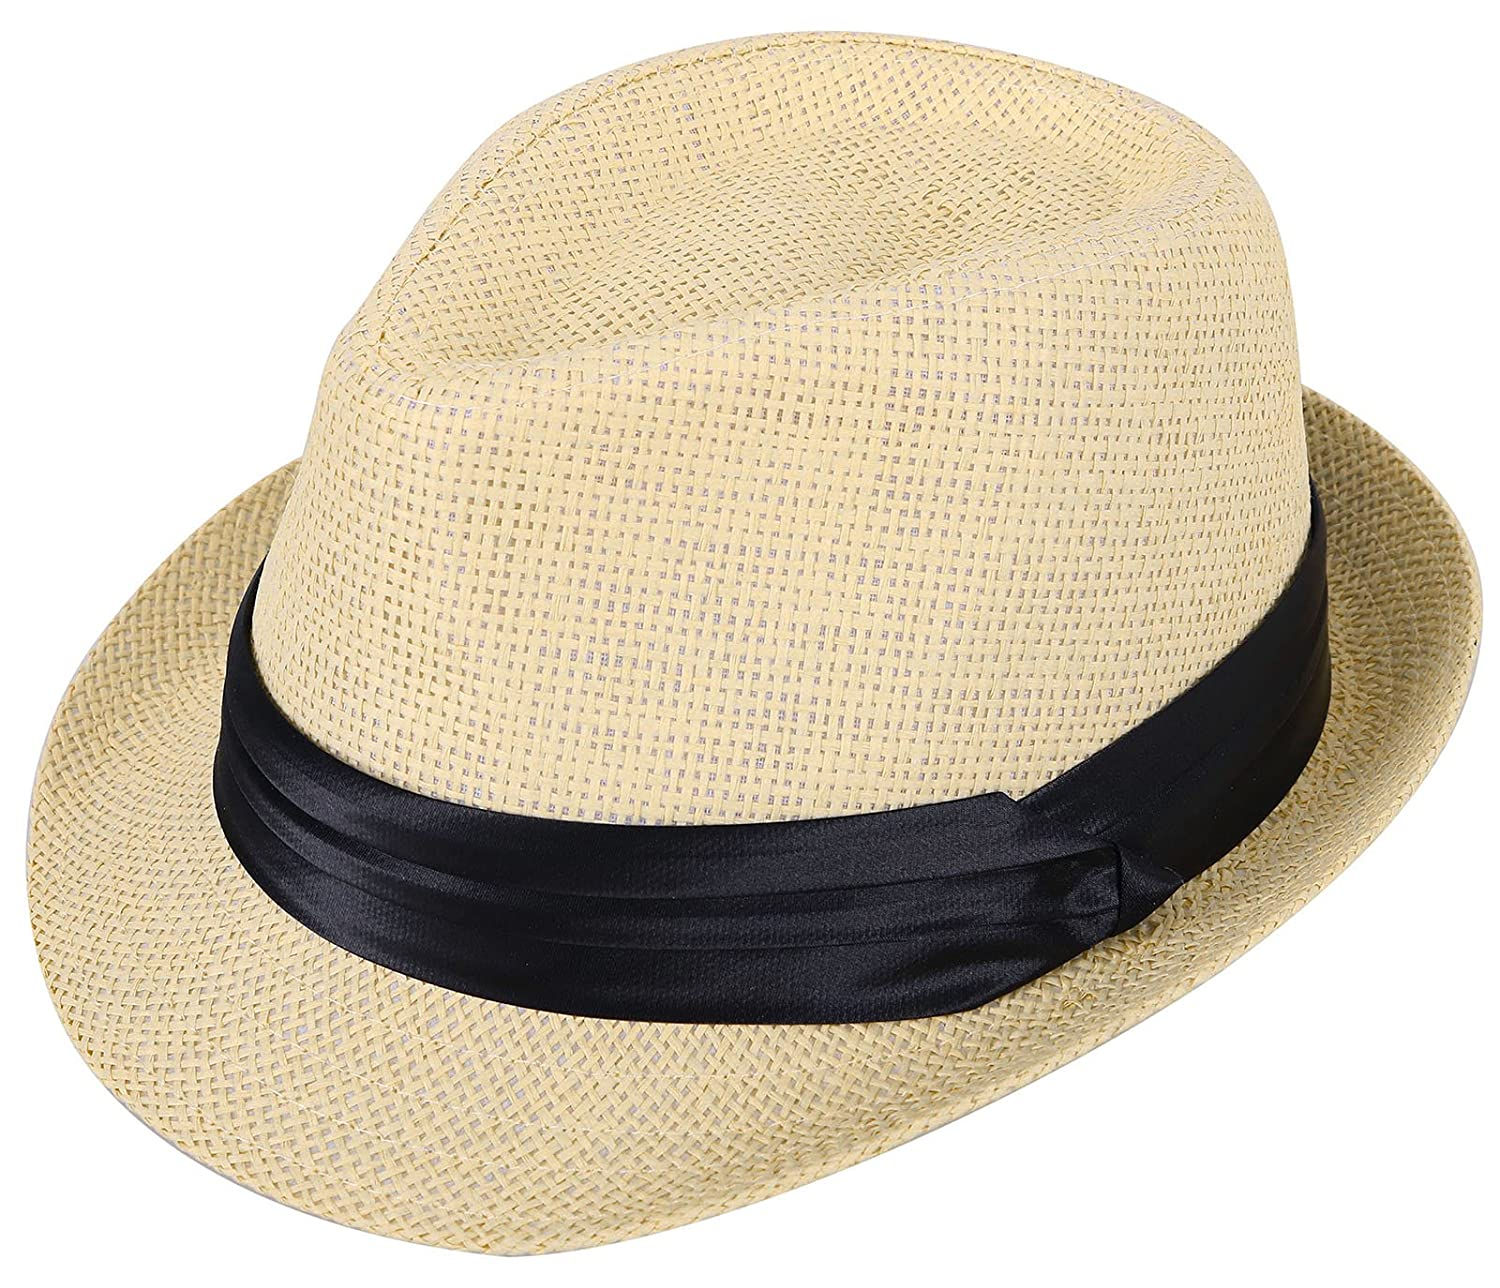 c5ad26f9 Amazon.com: Kids/Girls/Boys Straw Fedora Hat Children Beach Hat Sun Hat  Beige Buckle: Clothing